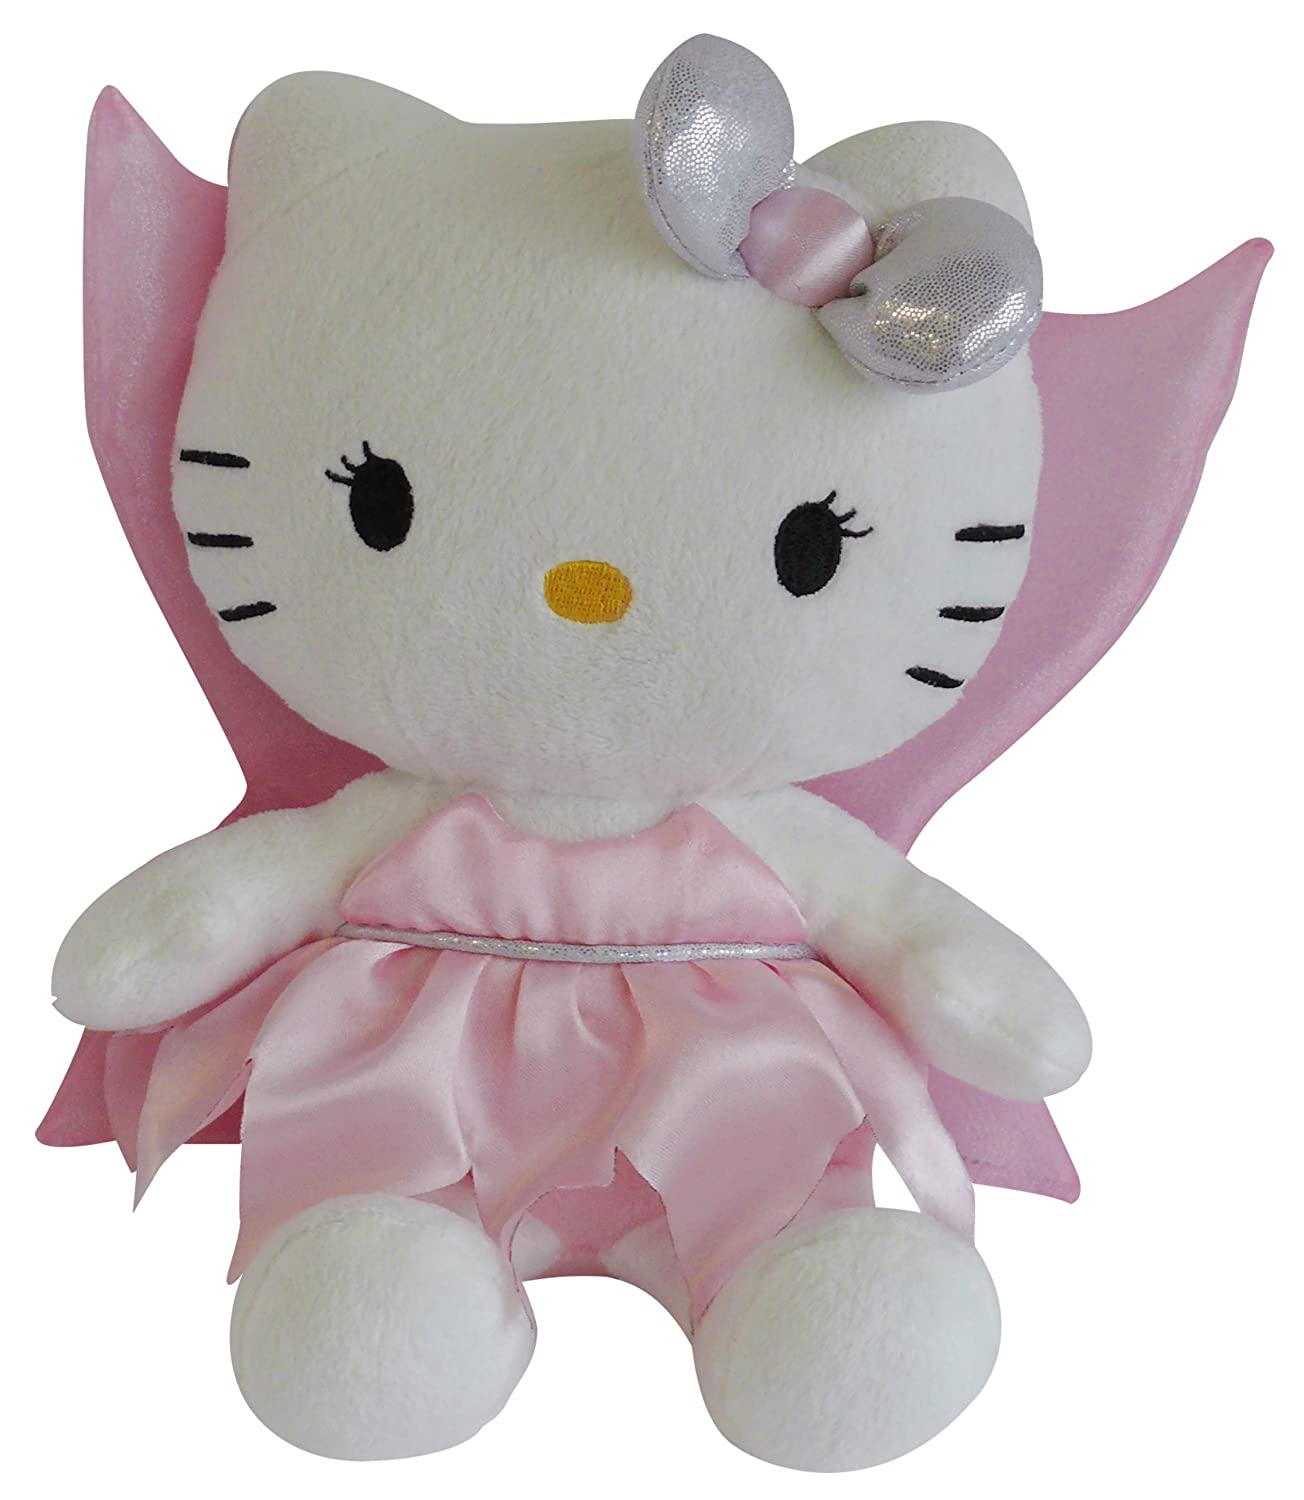 Jemini - Hello Kitty Beanie Peluche Figura Fairy 15 Cm  Amazon.it  Giochi e  giocattoli 72a5d16fdc